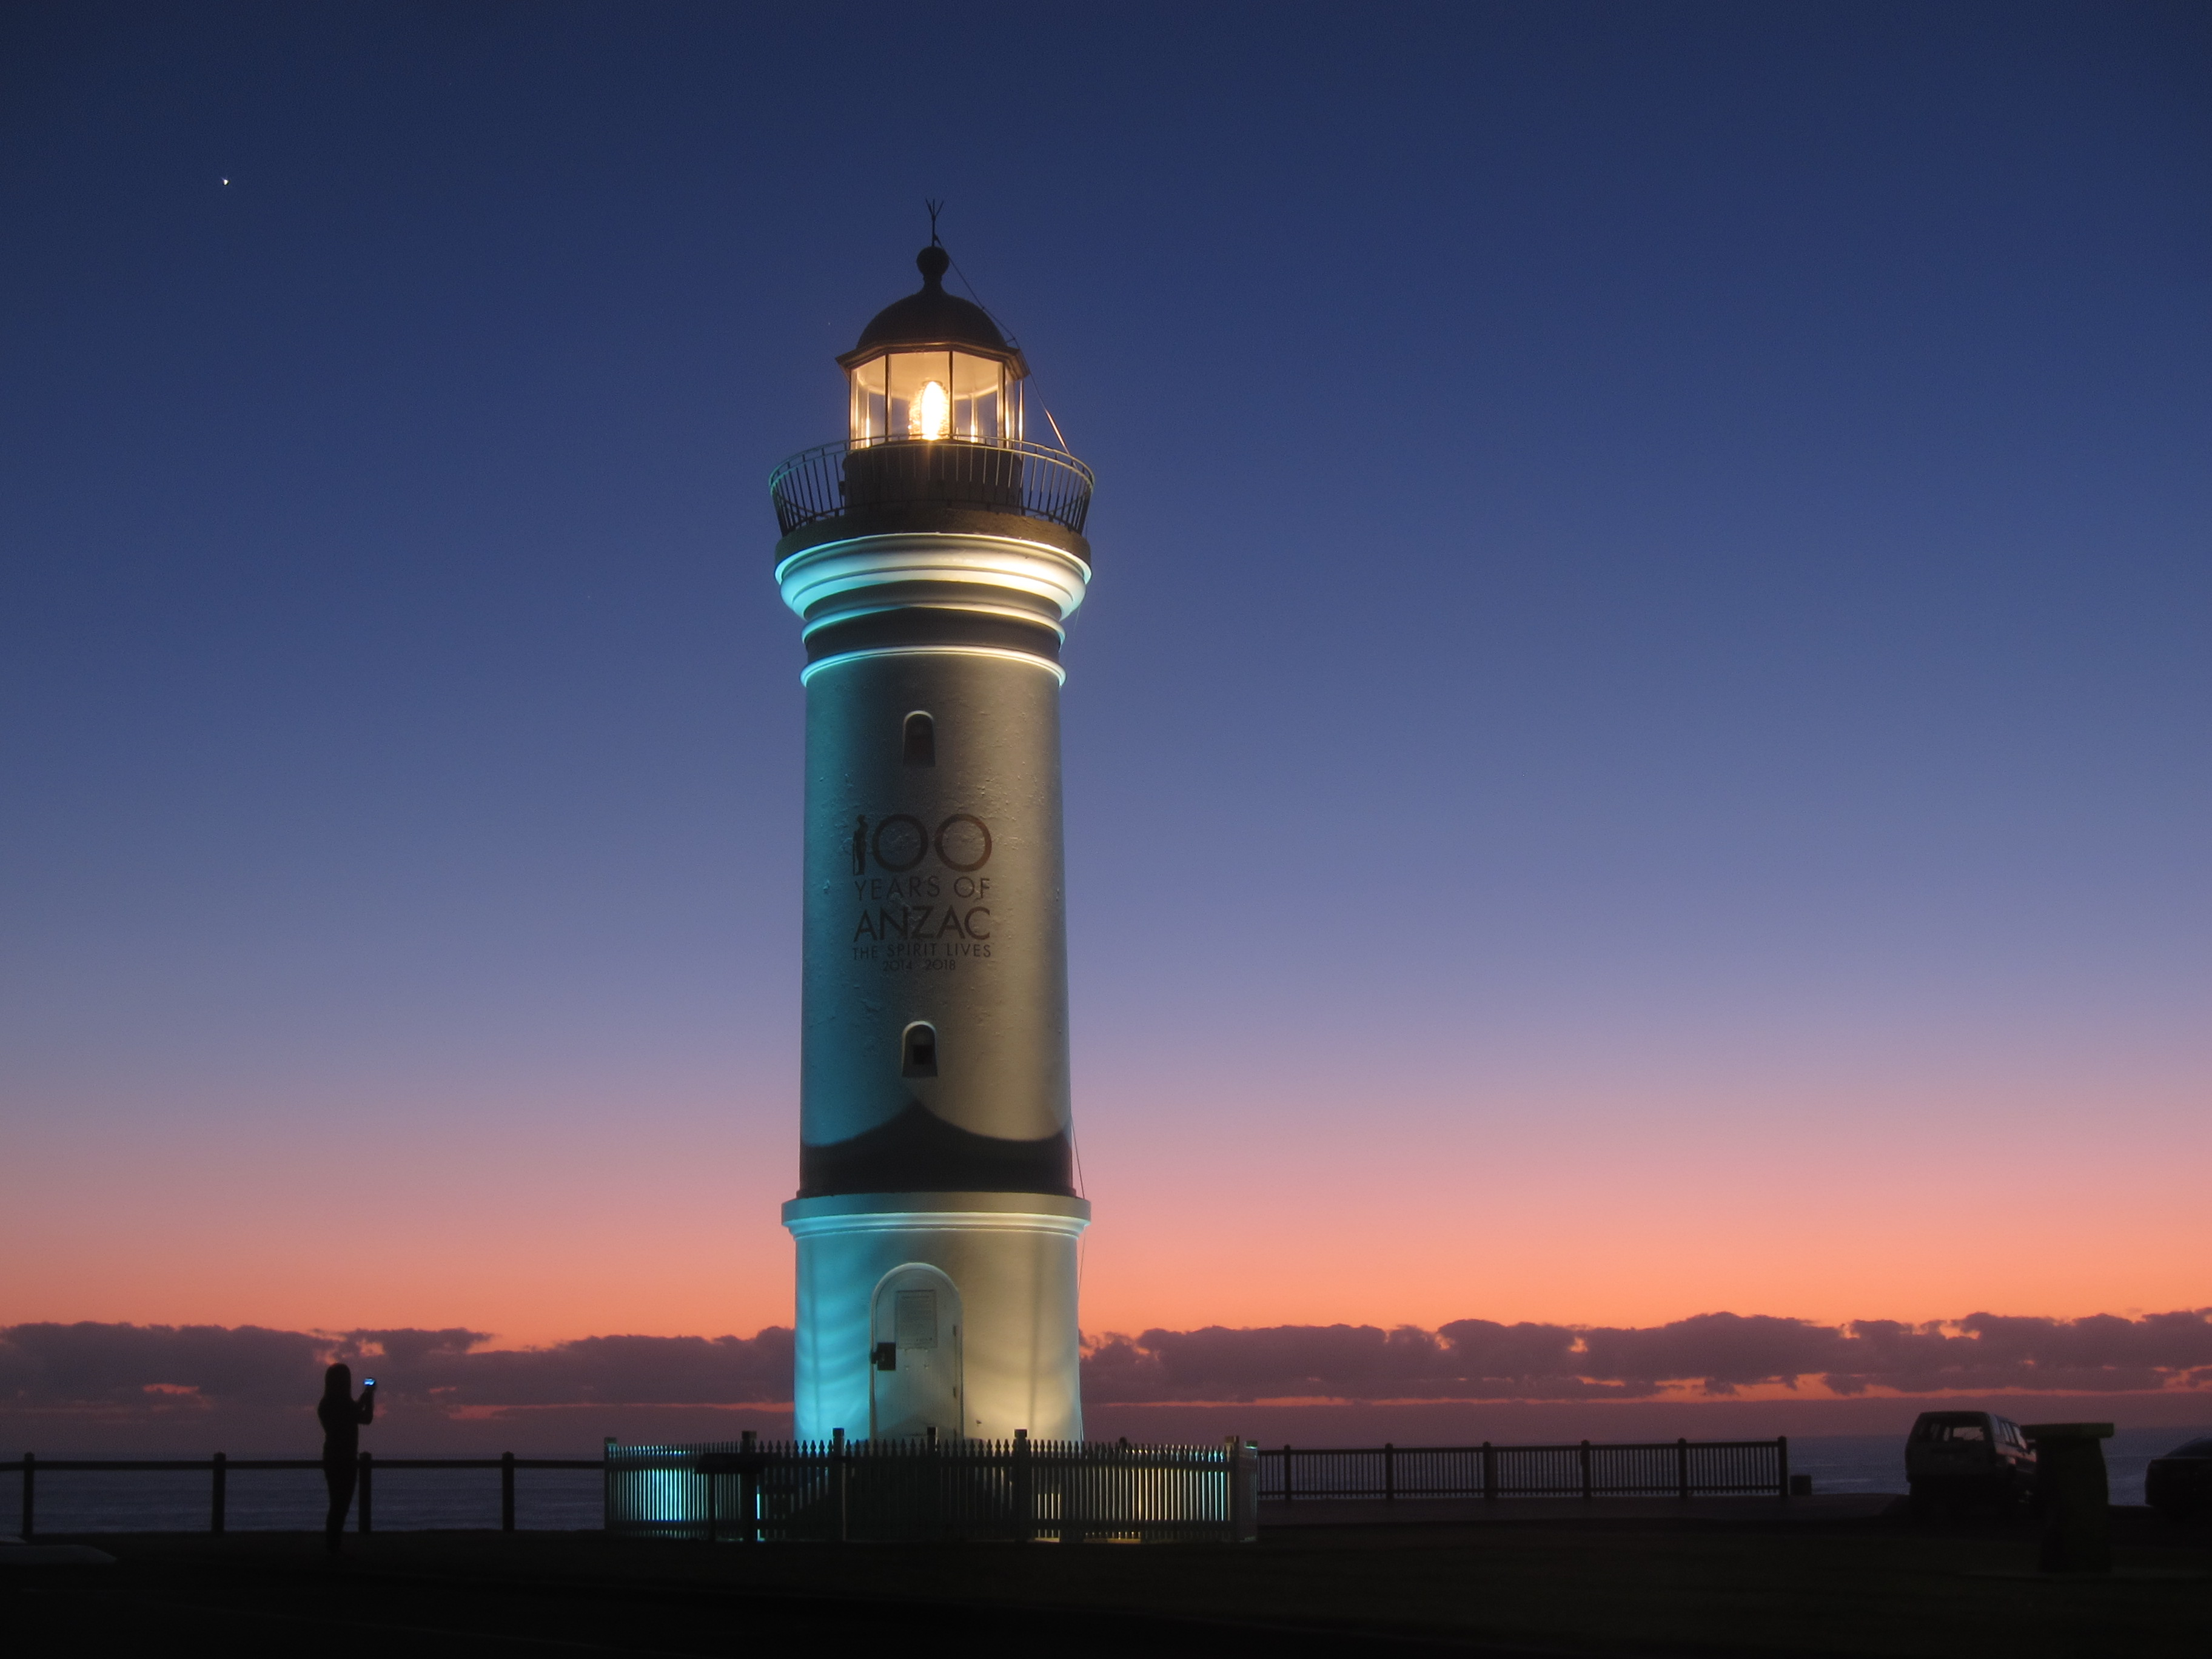 02. Kiama lighthouse (flashing)